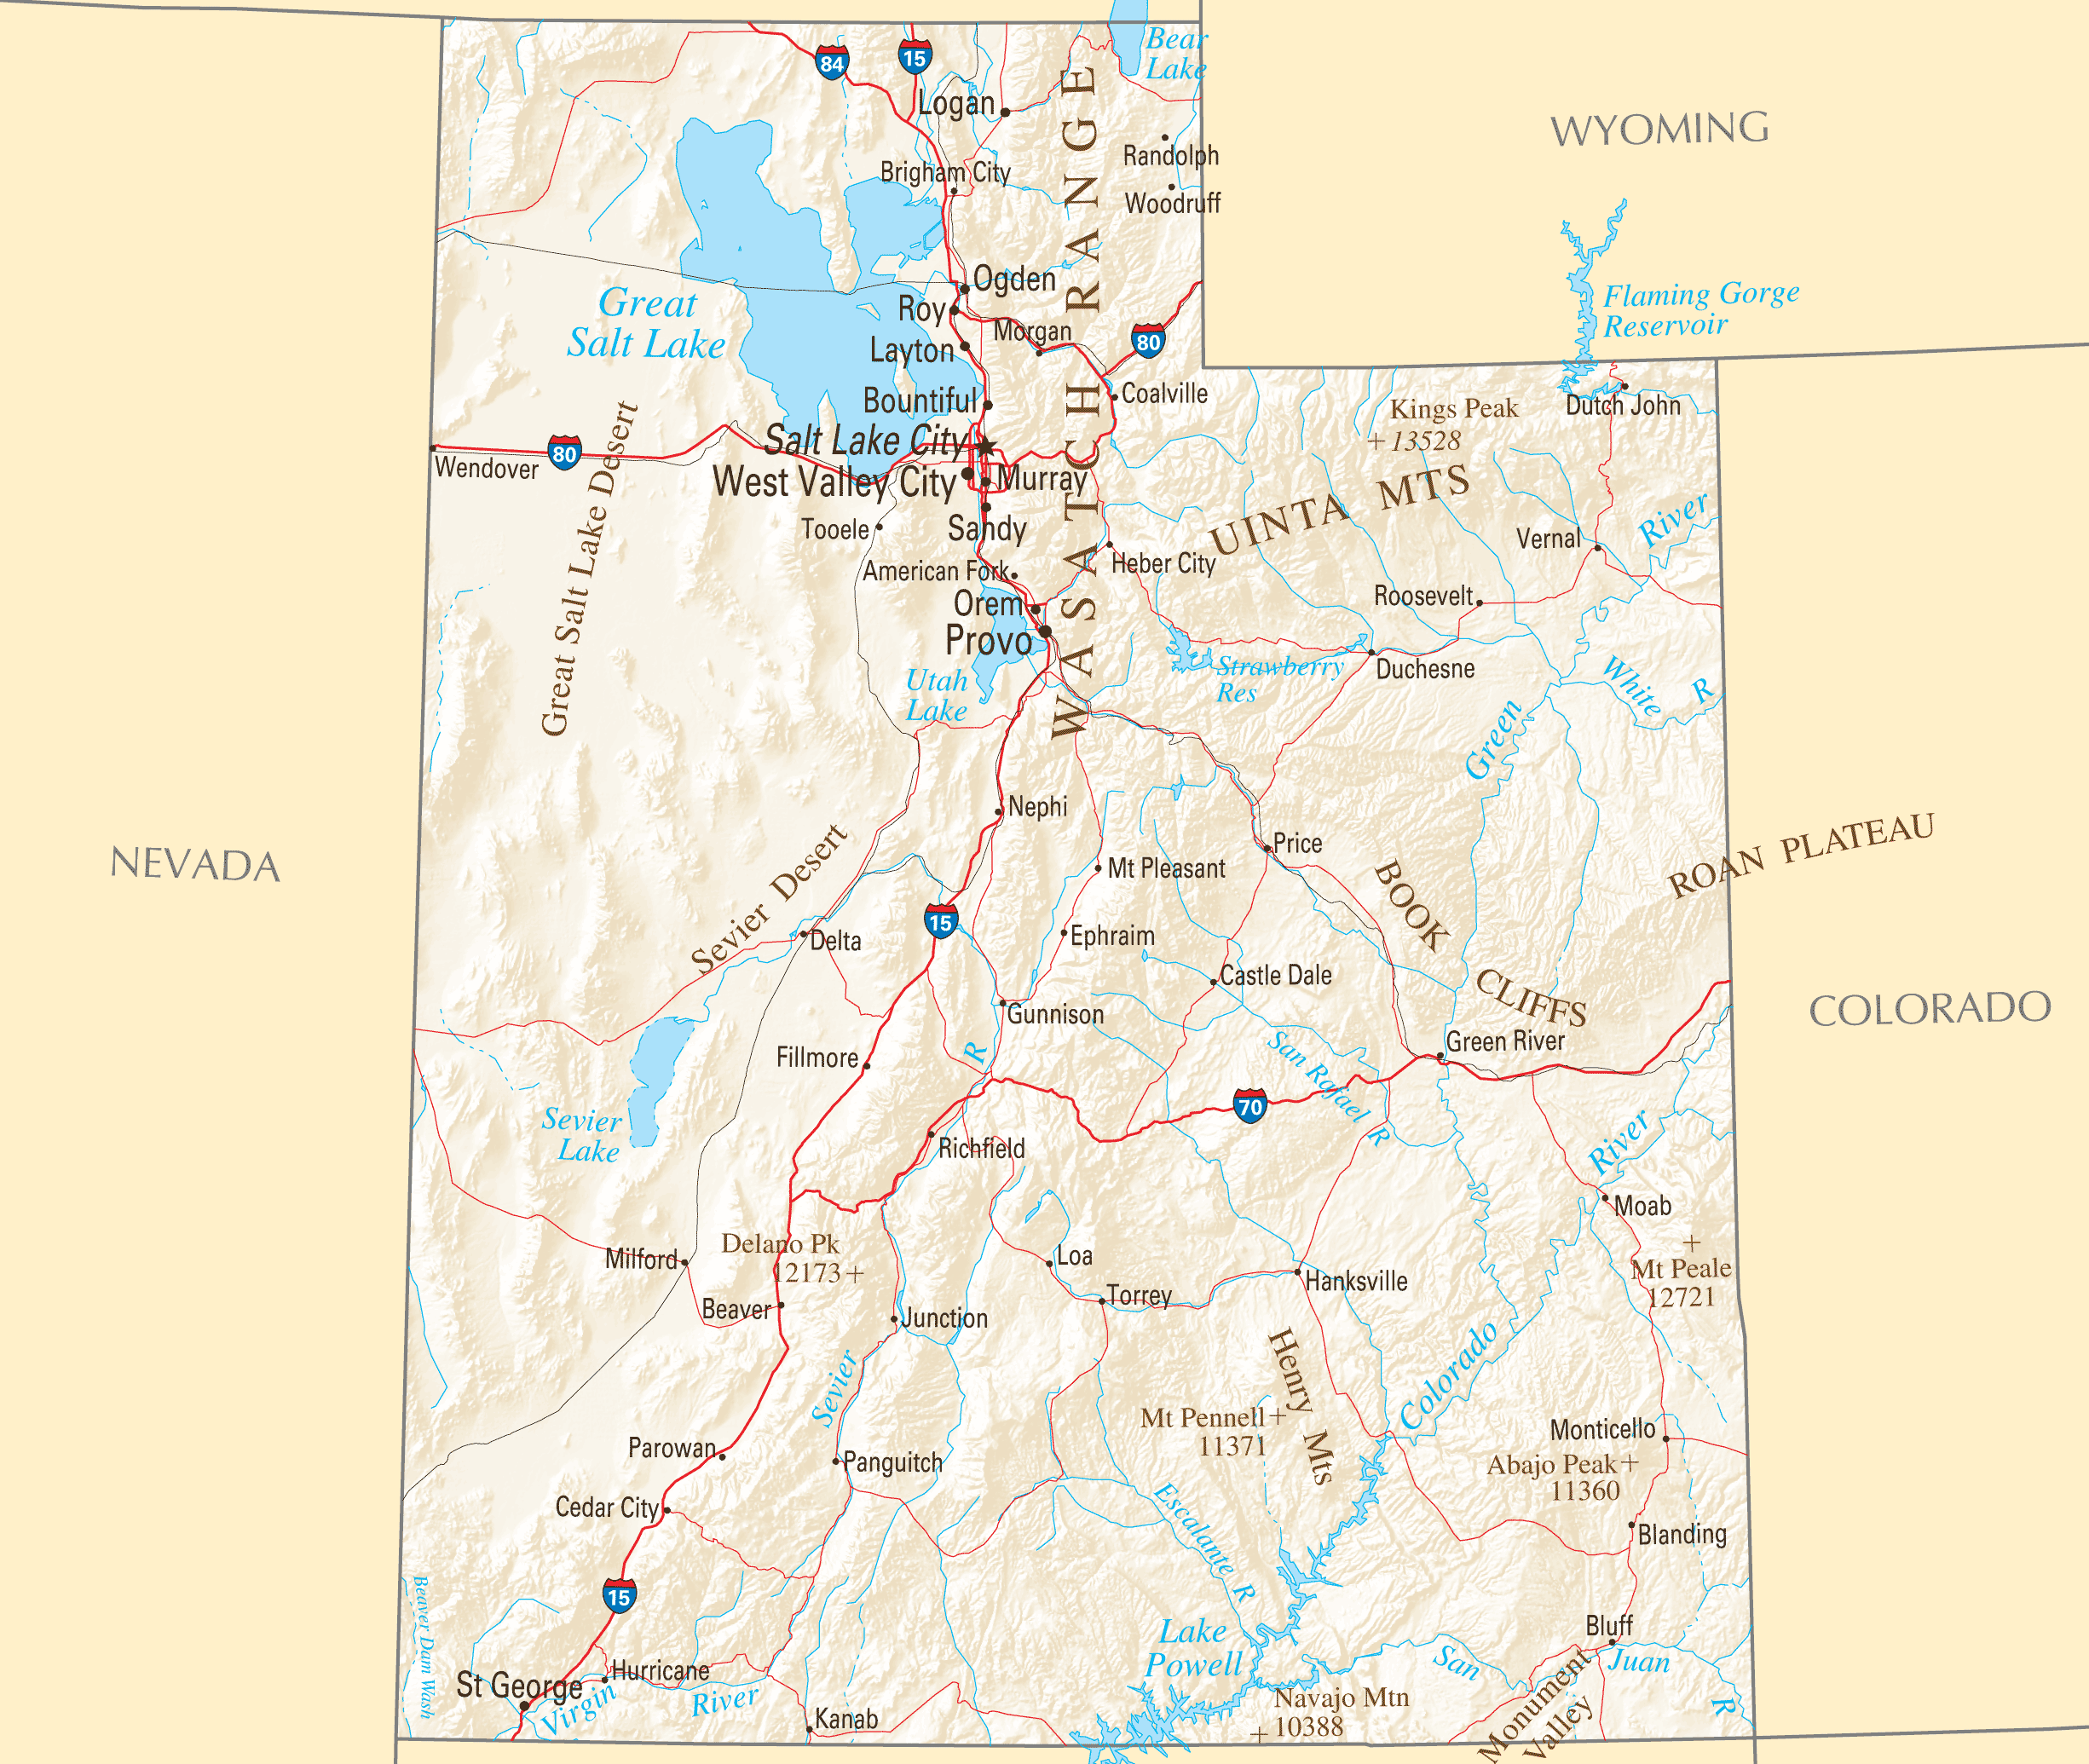 Utah Reference Map • Mapsof.net